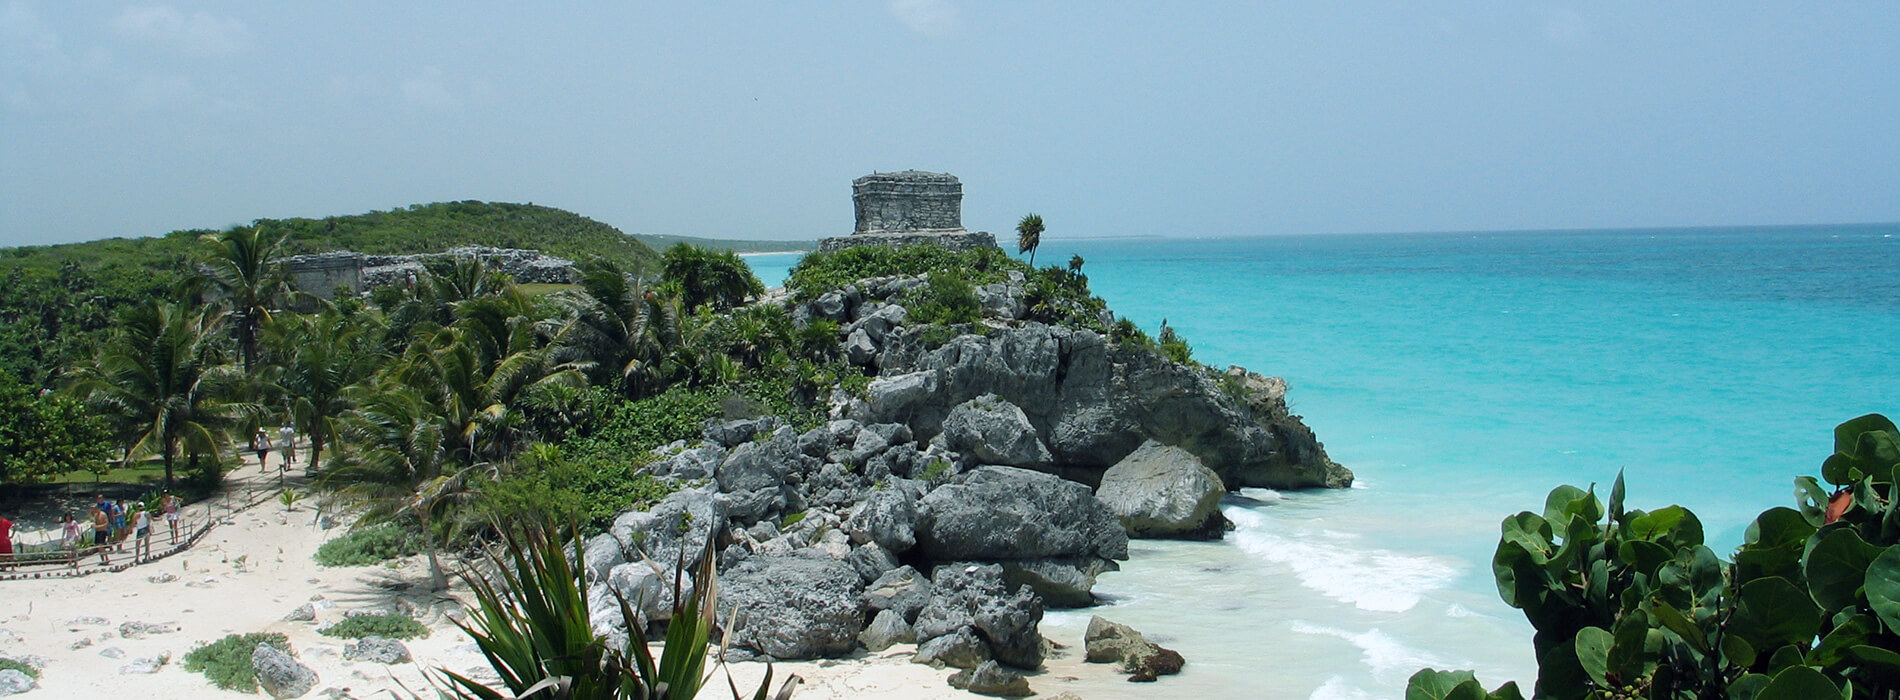 CITY OF DAWN – TULUM